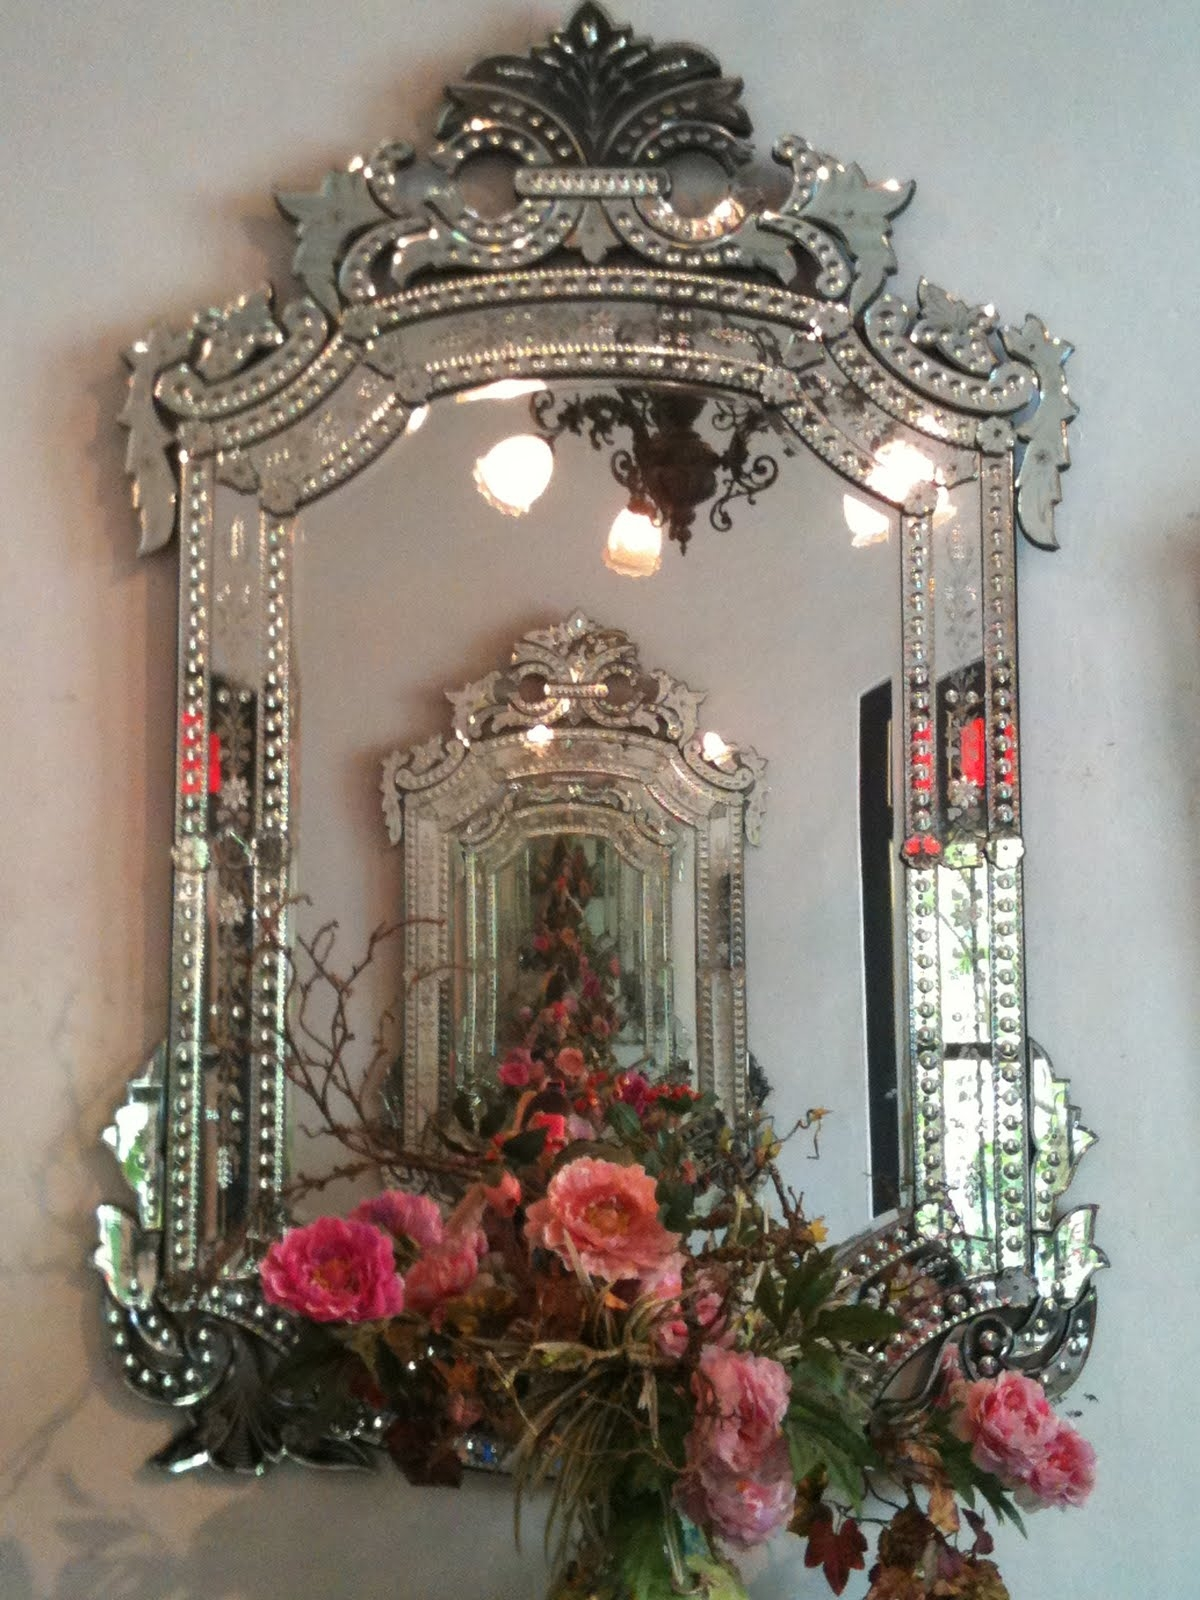 Venetian Mirror Ami The Prettiest Asked The Rose Ohhhh I Love With Regard To Venetian Wall Mirror (Image 10 of 15)